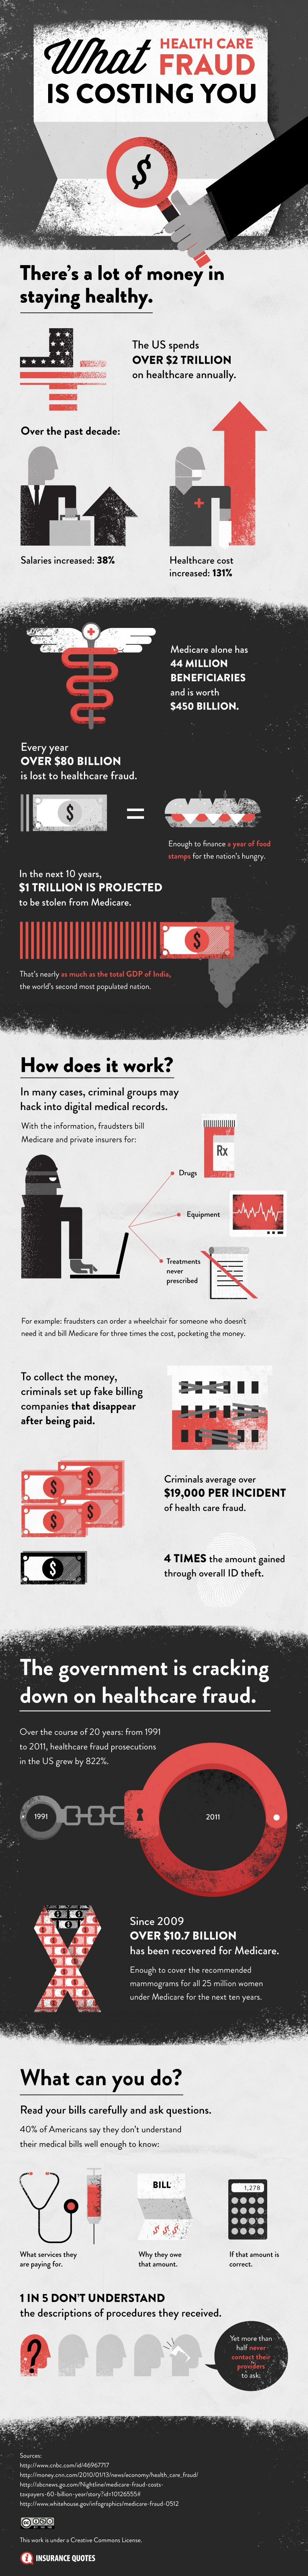 Health Infographic: What Healthcare Fraud Is Costing You - ComplianceandSafety.com